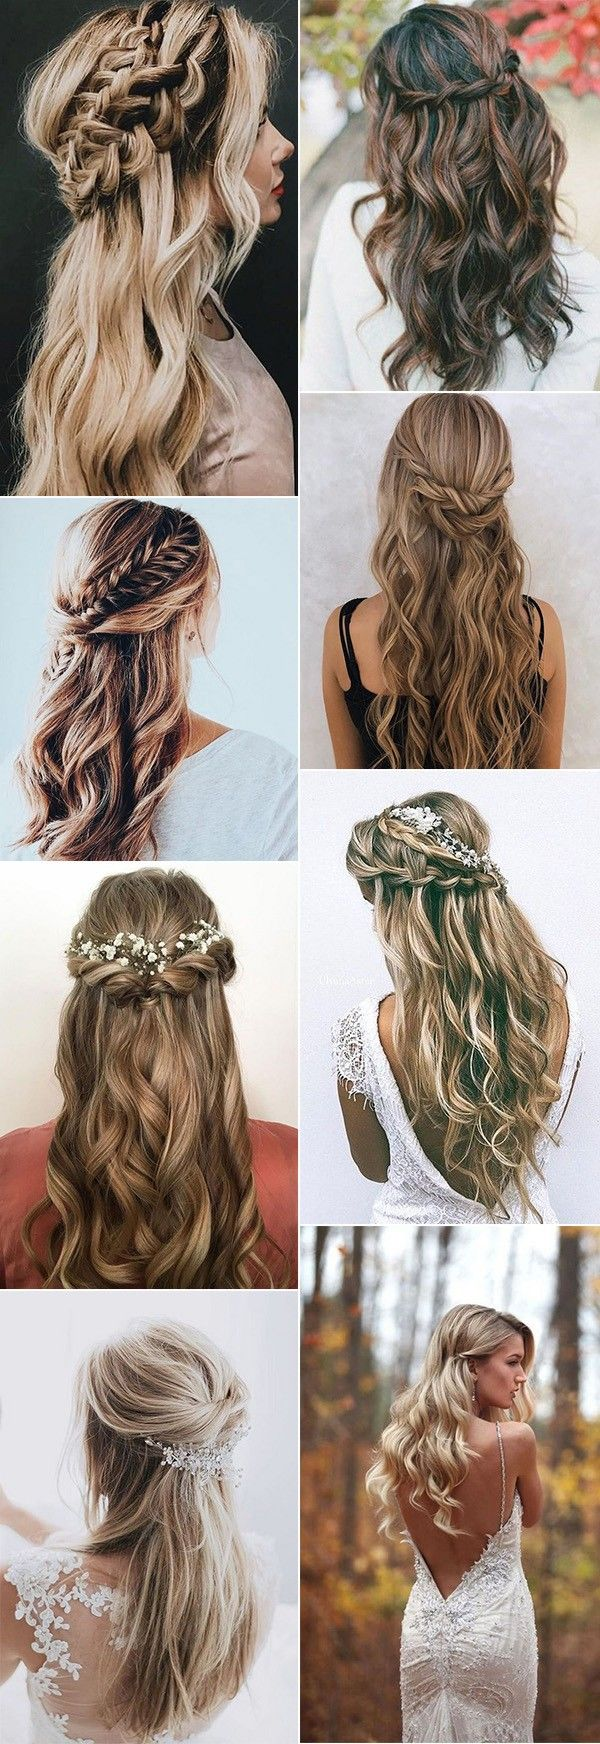 top 20 half up half down wedding hairstyles for 2018/2019